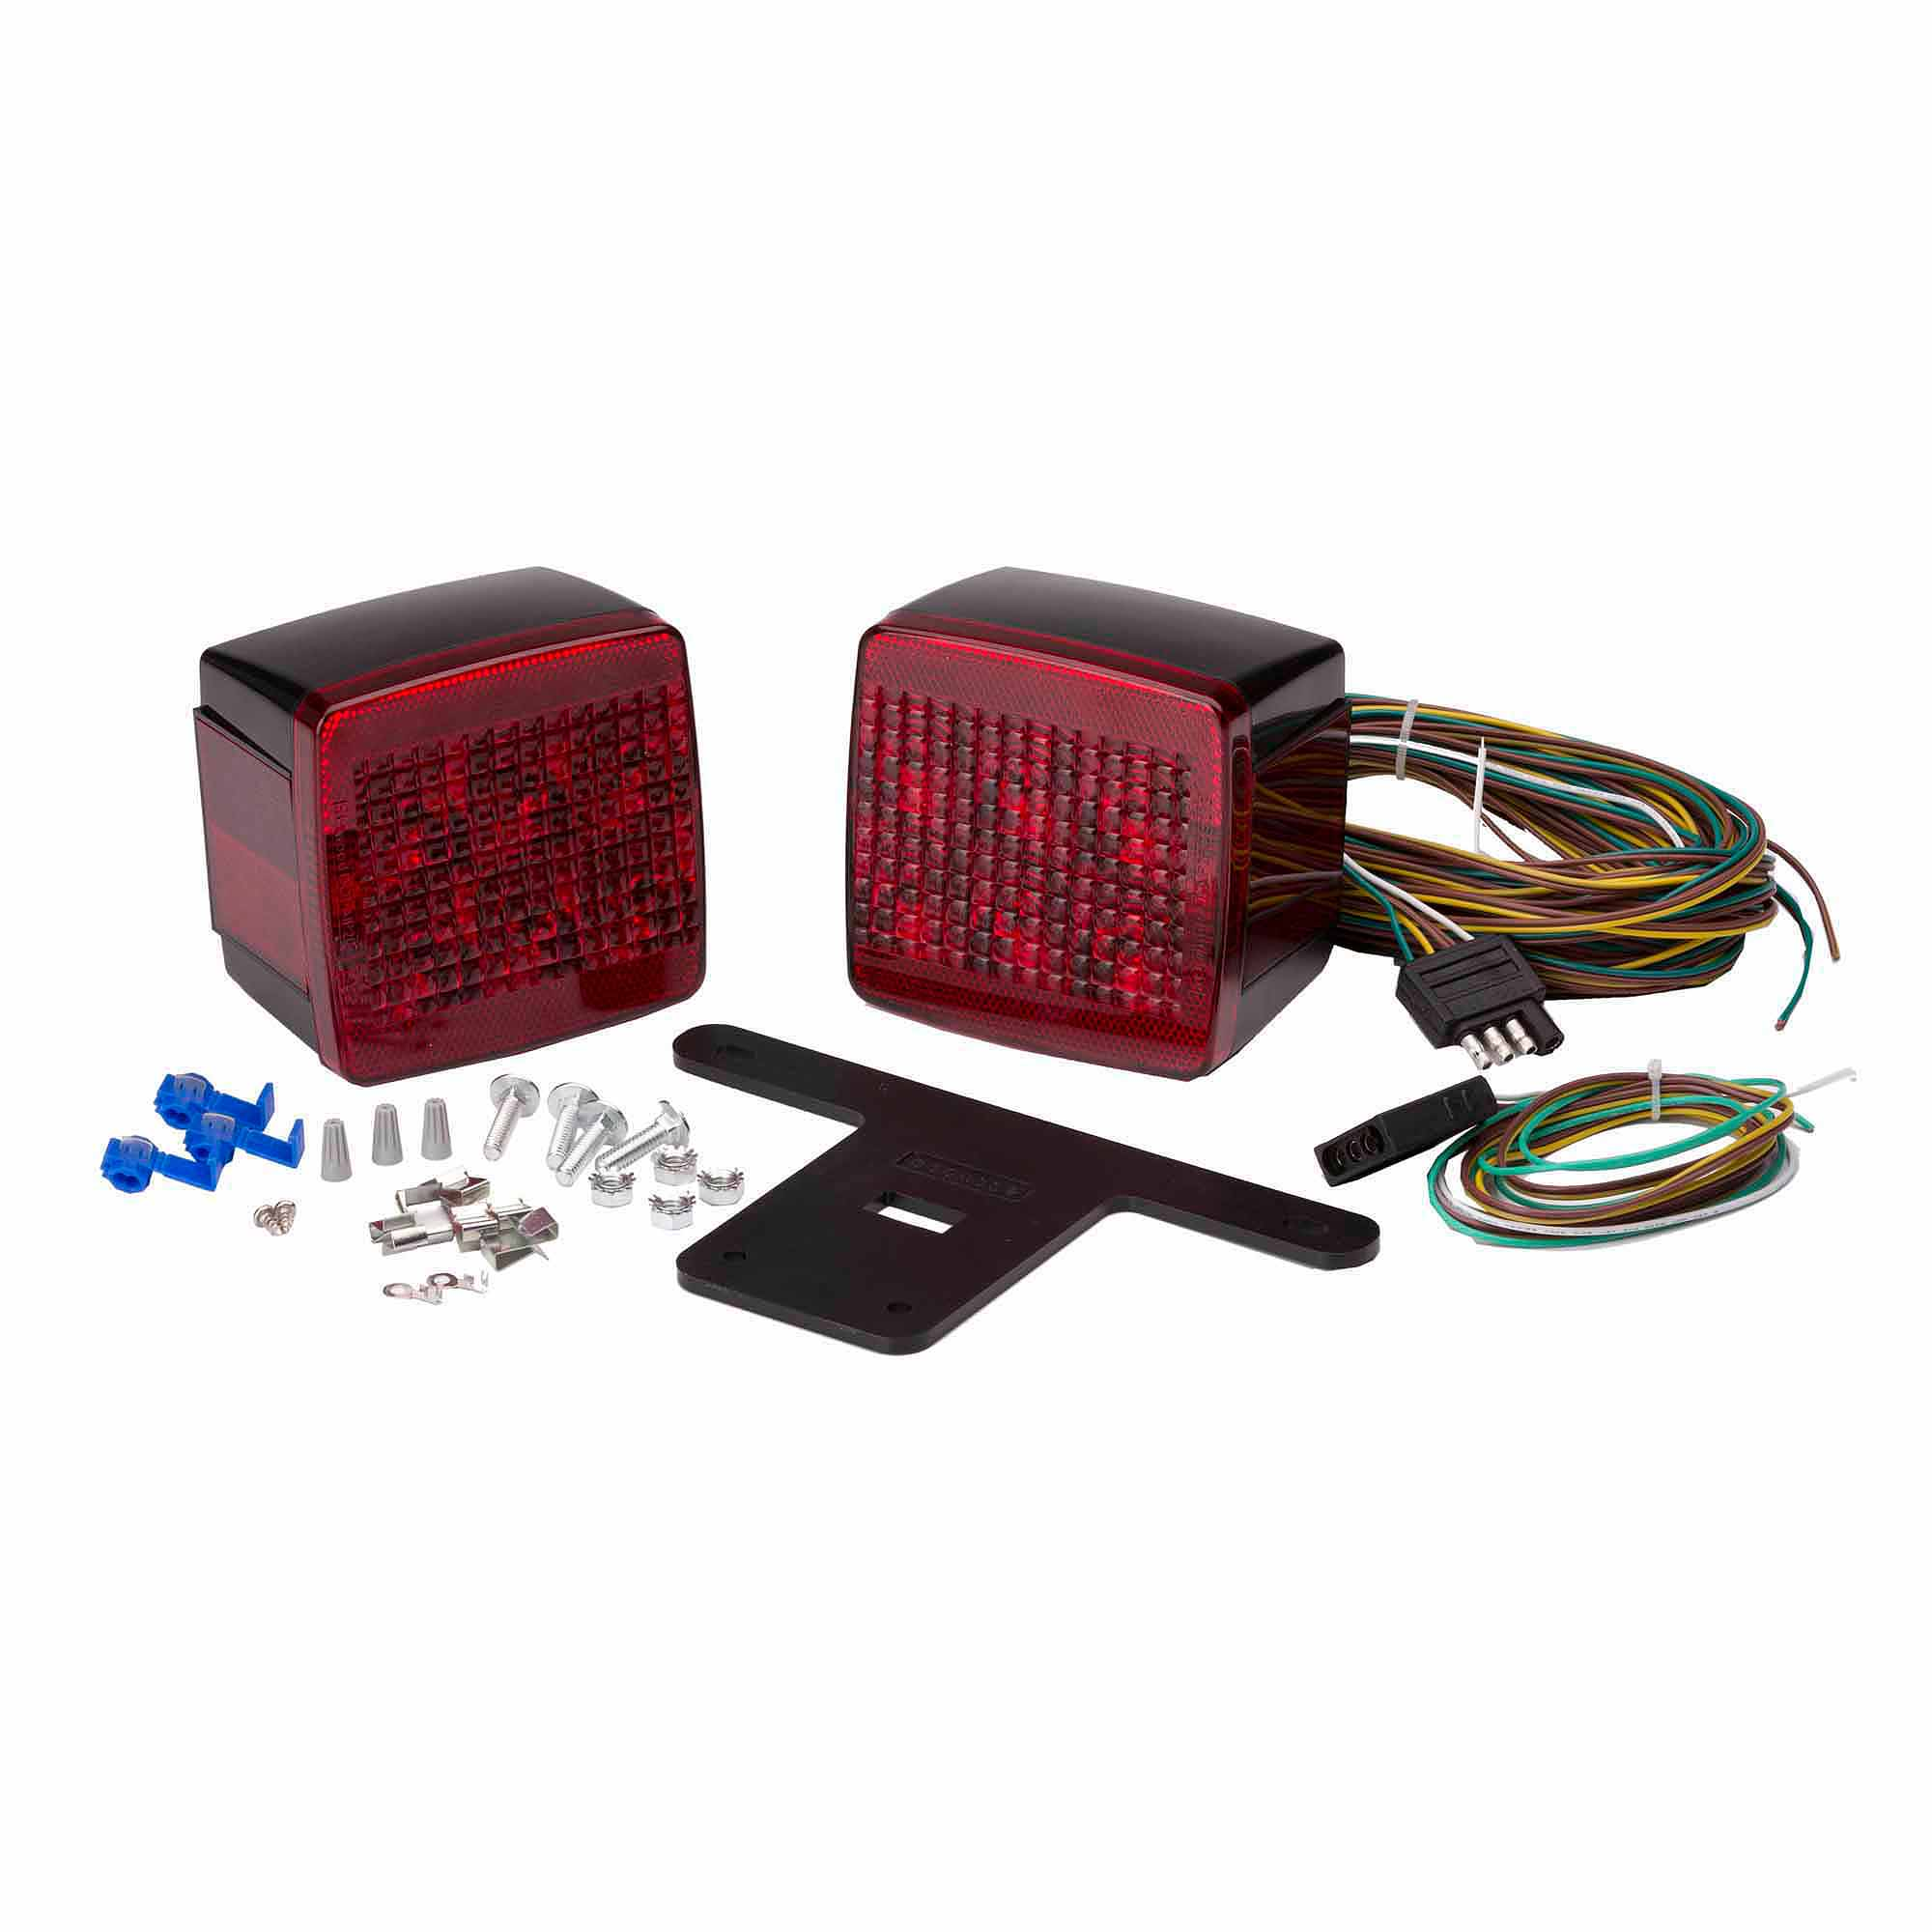 Attwood LED Standard Trailer Light Kit - Walmart.com